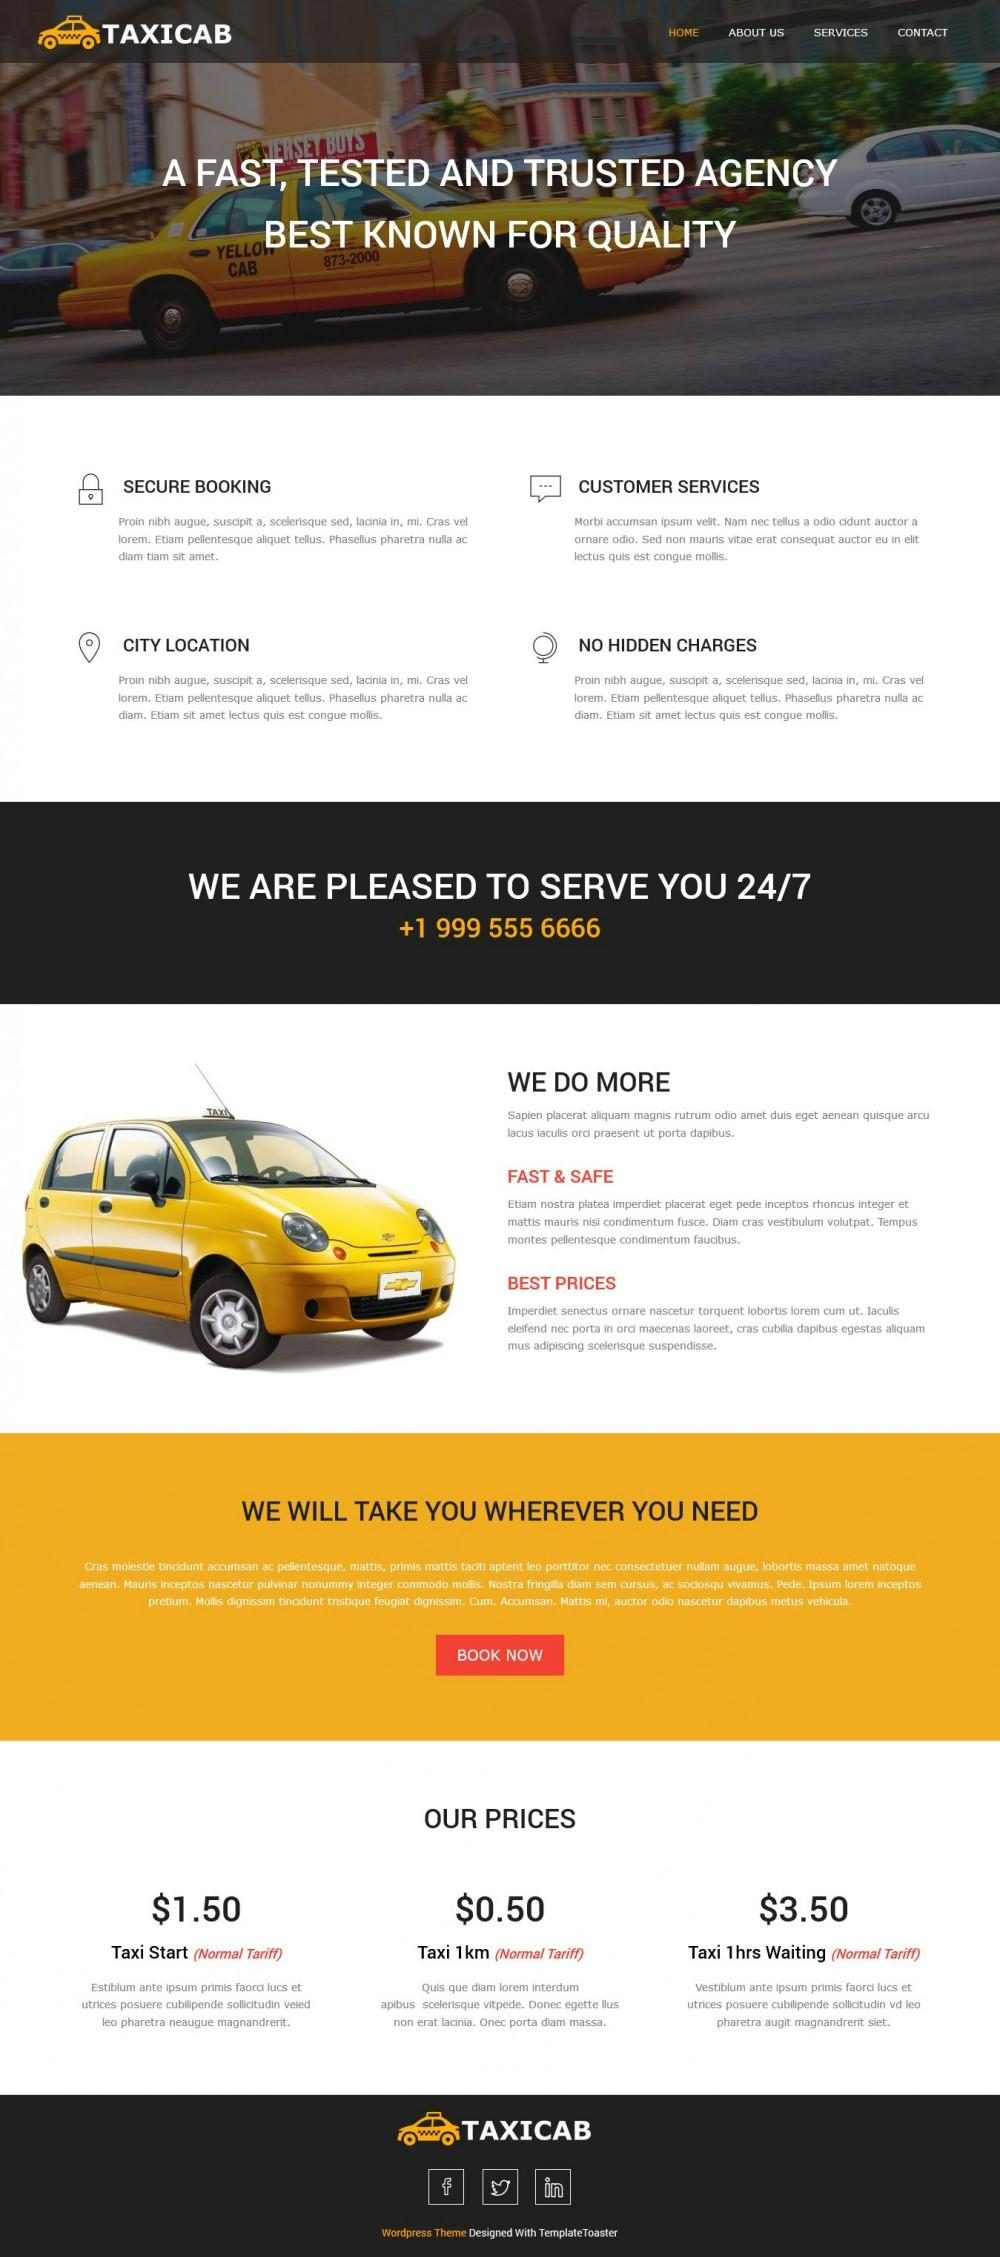 Taxi-Cab - Taxi Company and Taxi Firm Joomla Template